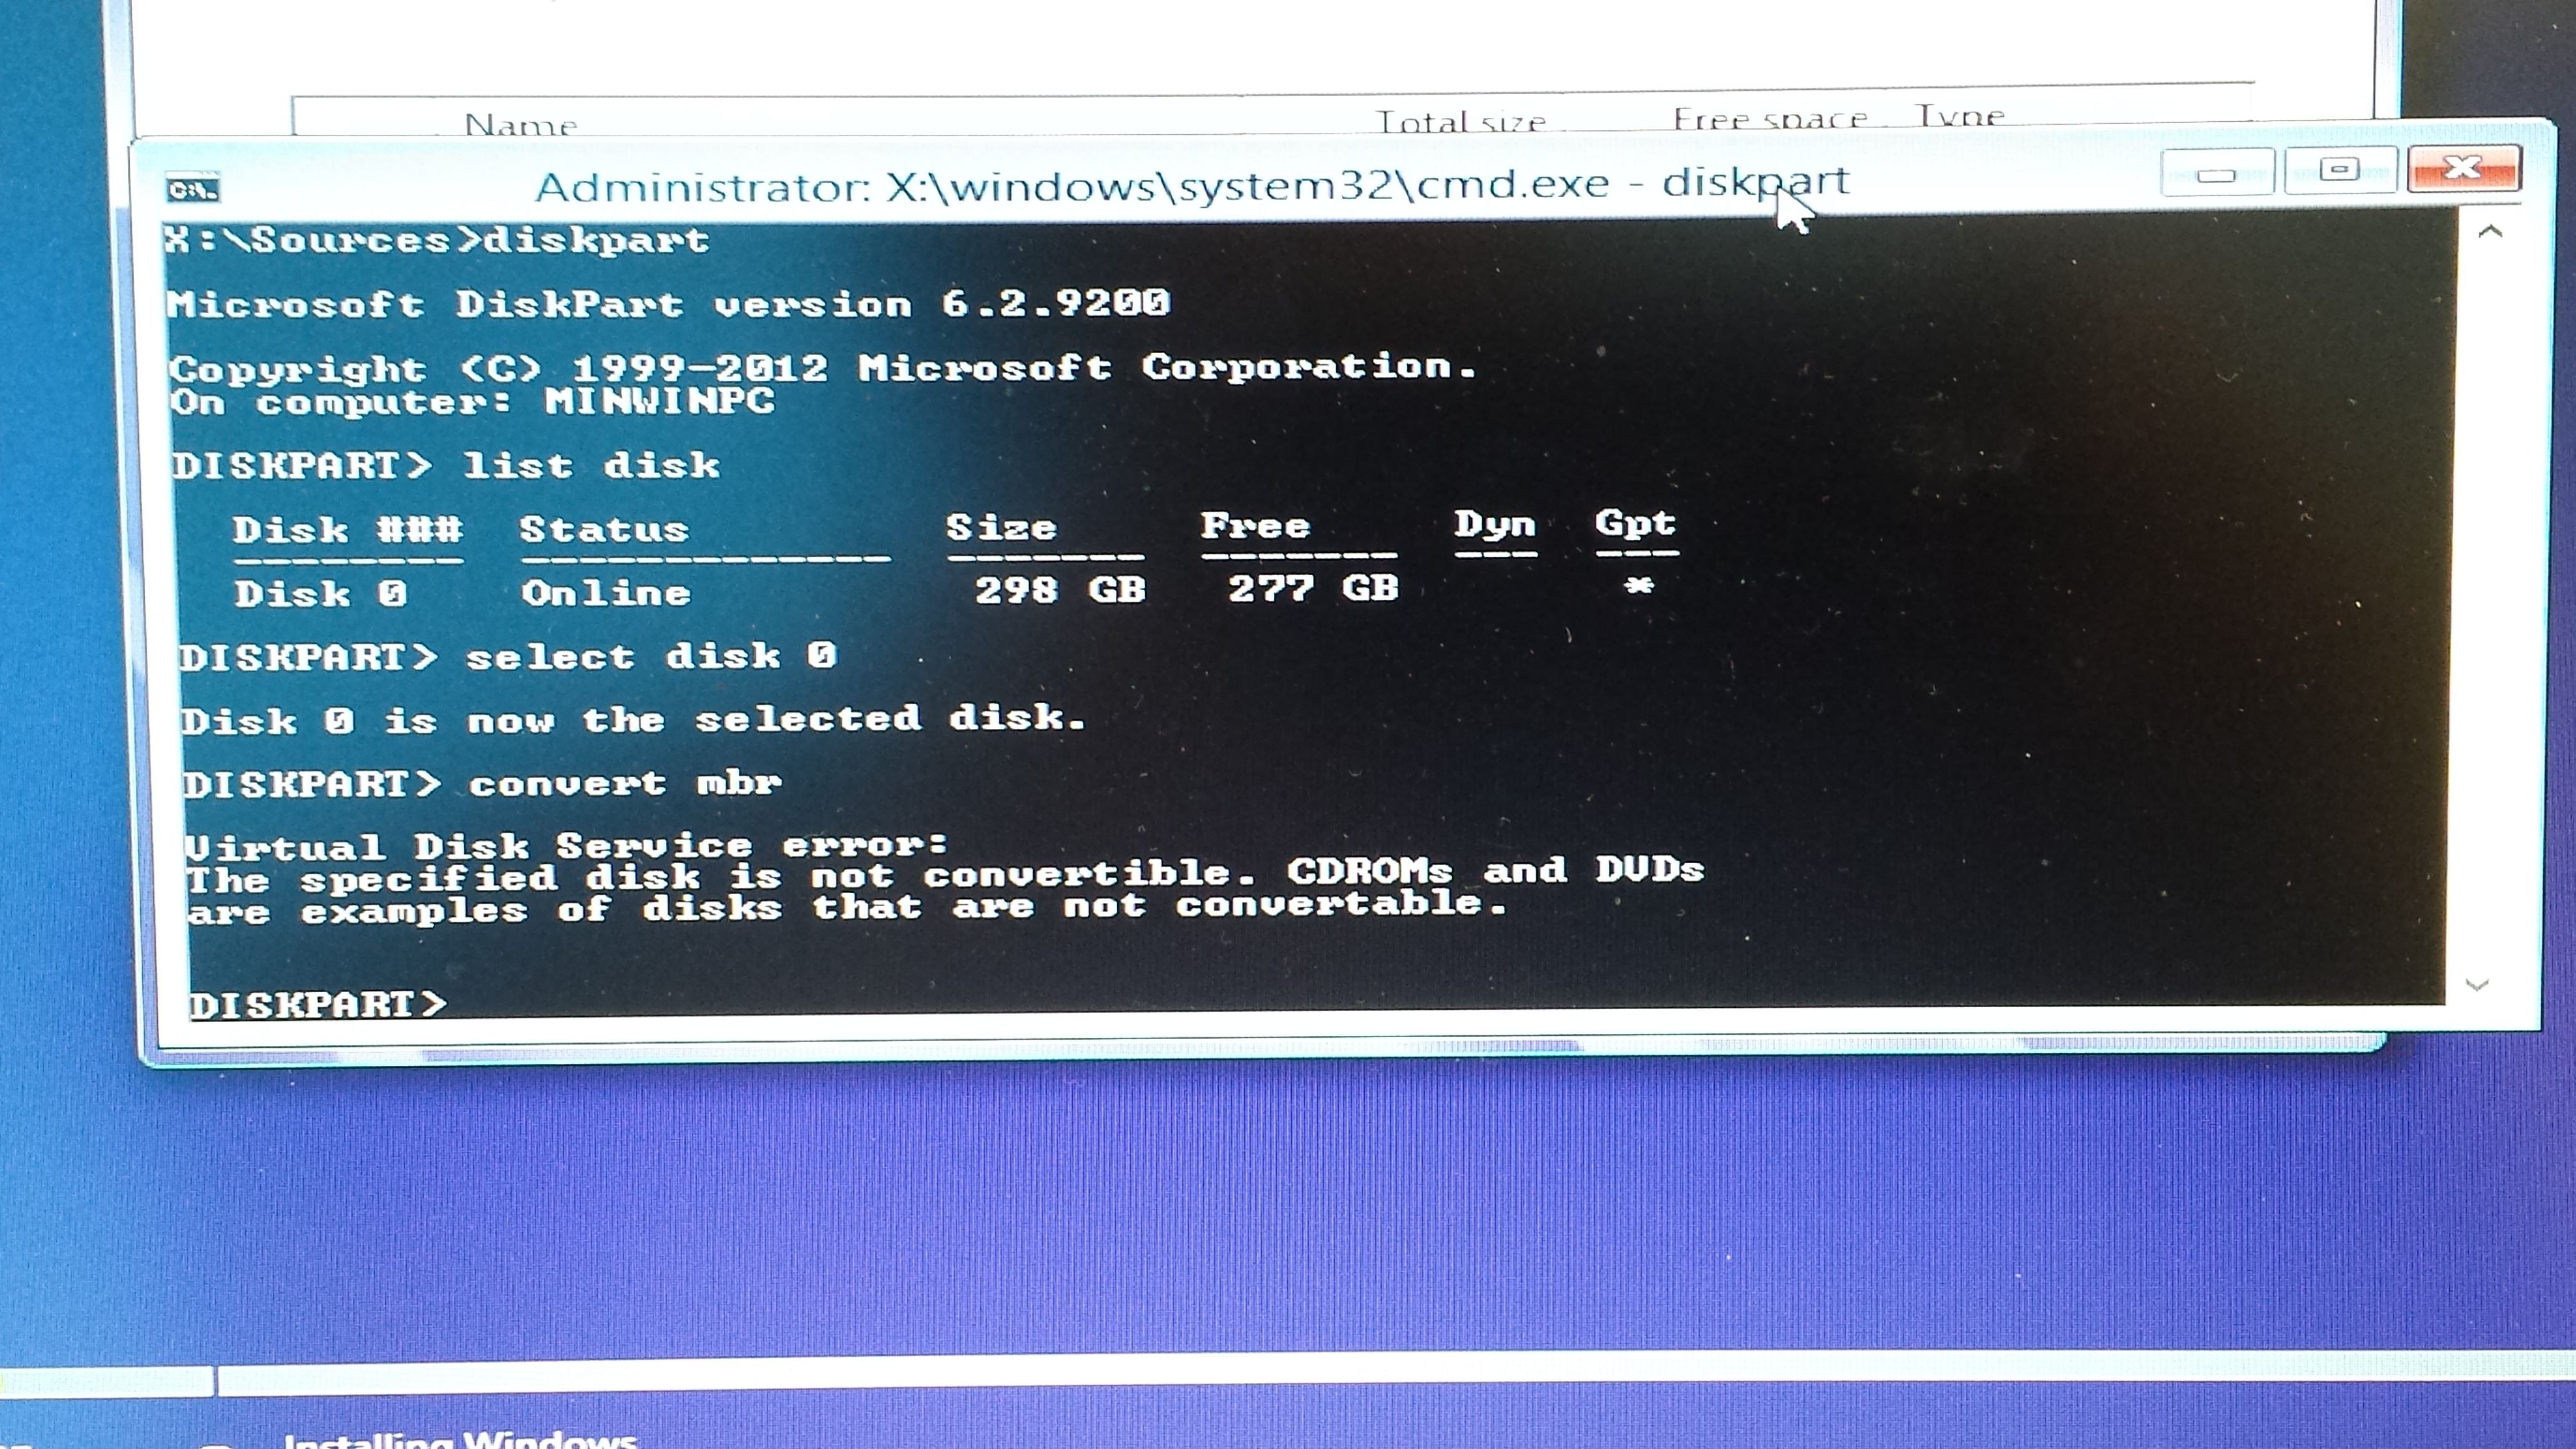 Windows cannot be installed to this disk, the selected disk